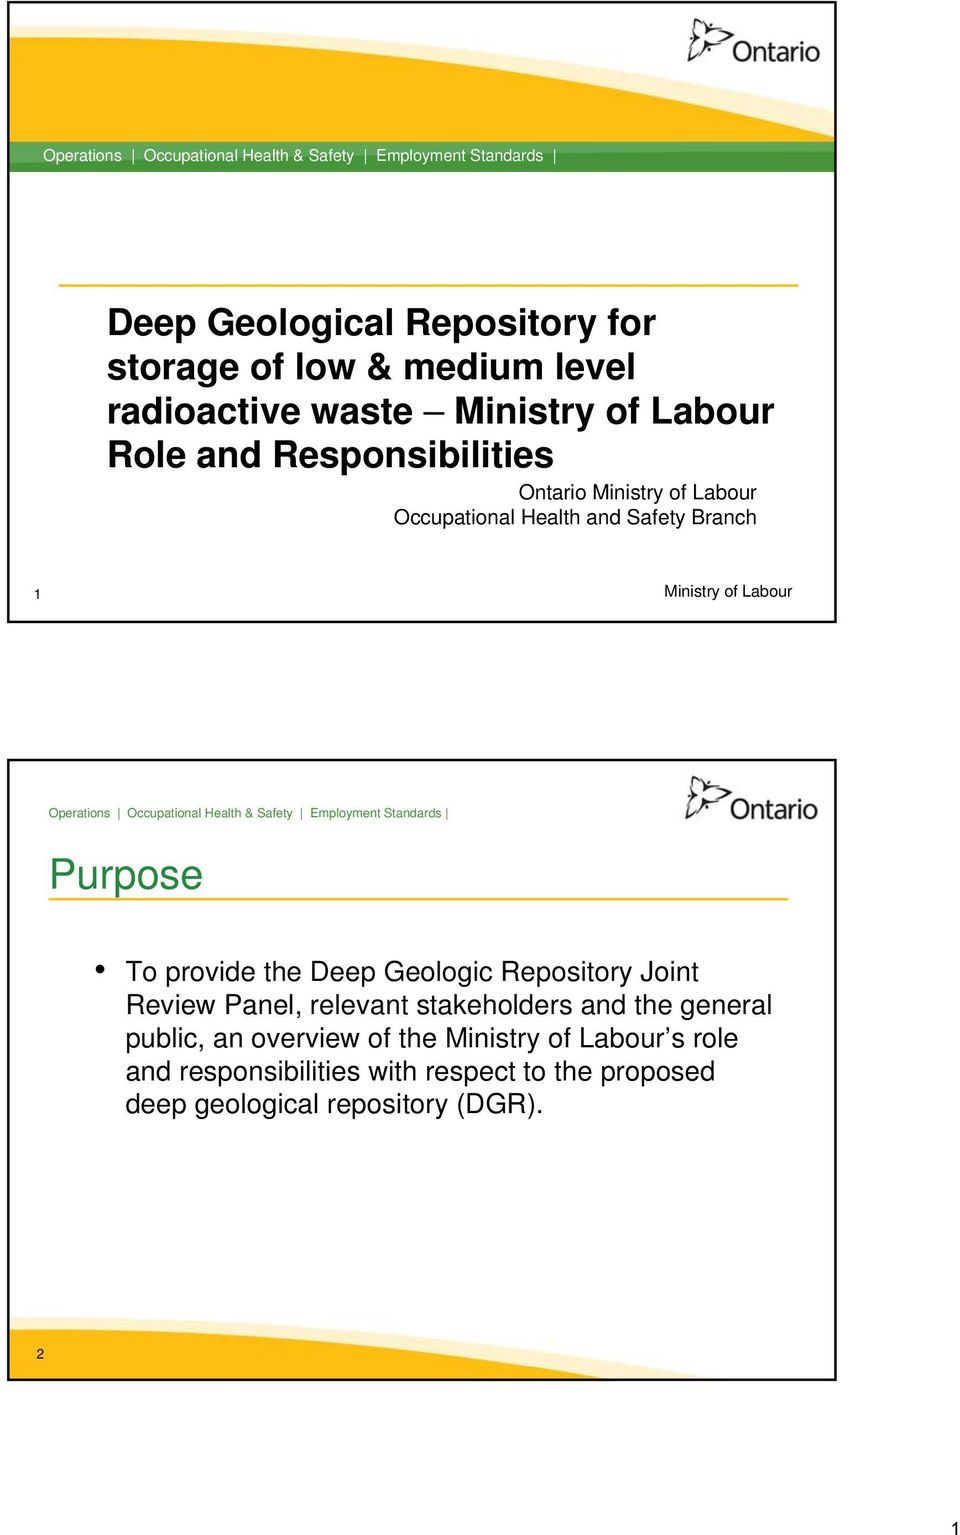 provide the Deep Geologic Repository Joint Review Panel, relevant stakeholders and the general public, an